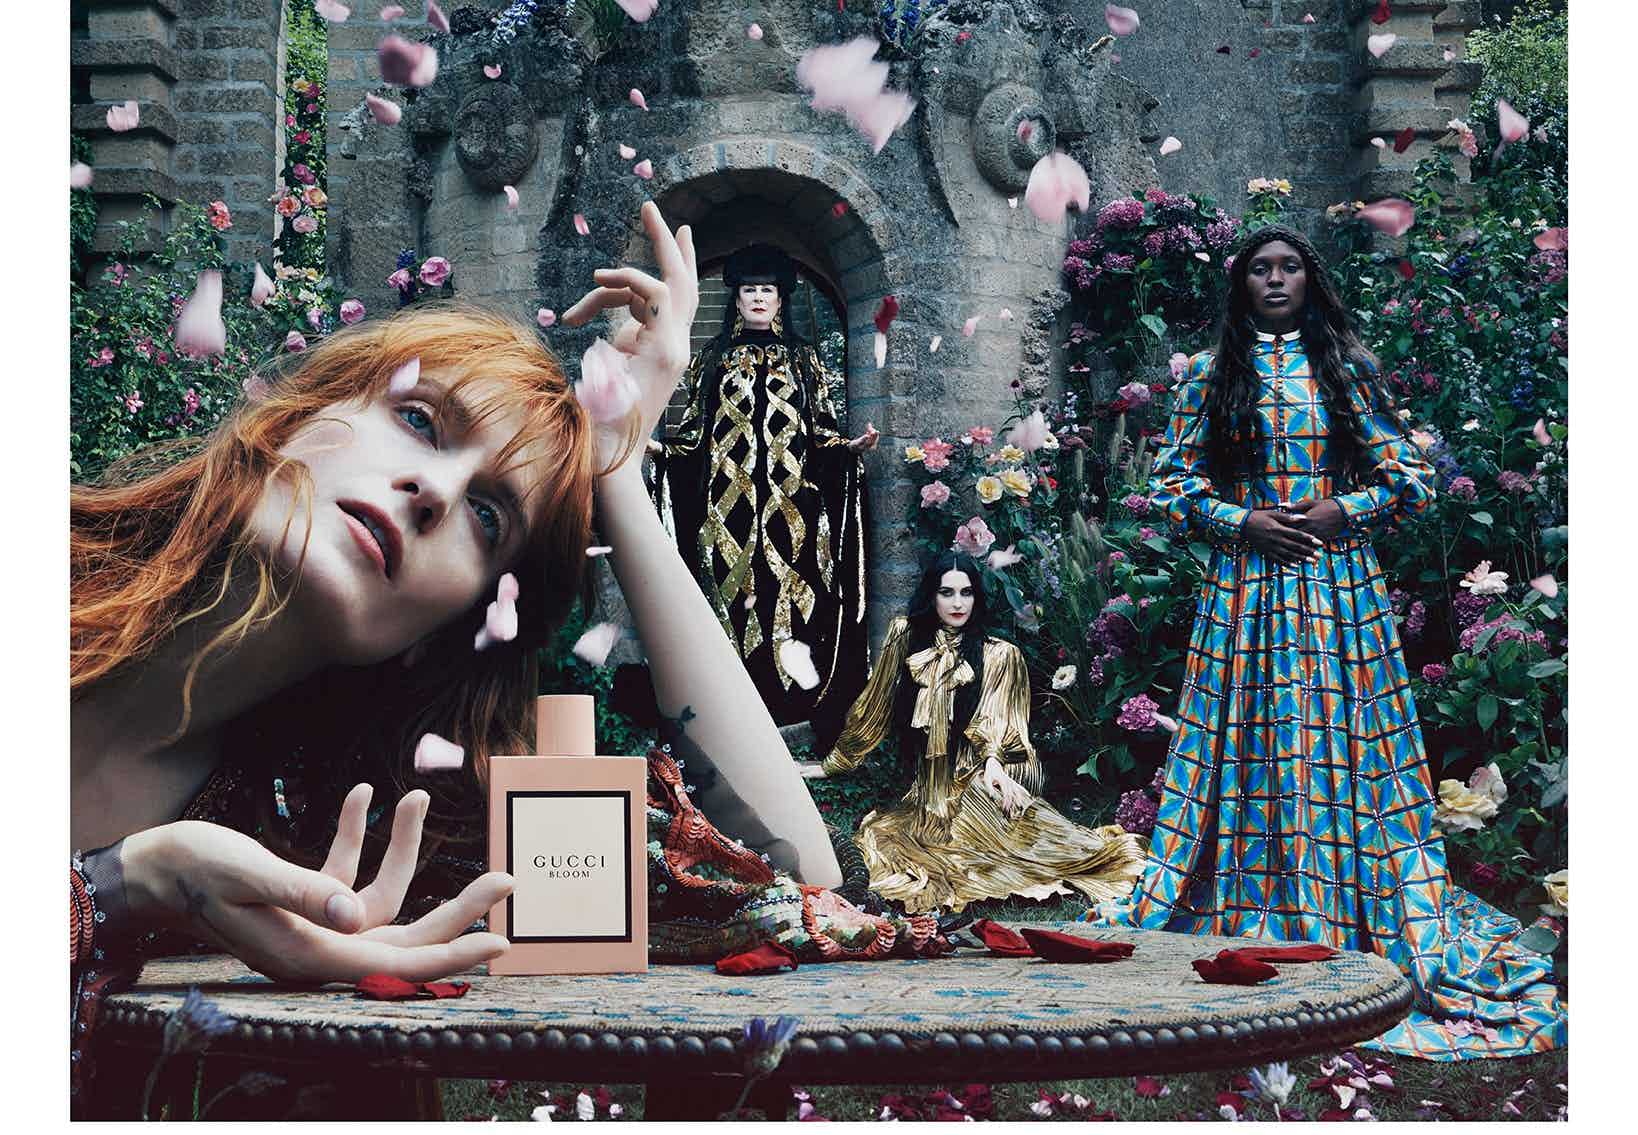 GUCCI - BLOOM 2020 Photographer: Flora Sigismondi Model: Anjelica Huston, Florence Welch Location: Italy, Umbria - La Scarzuola